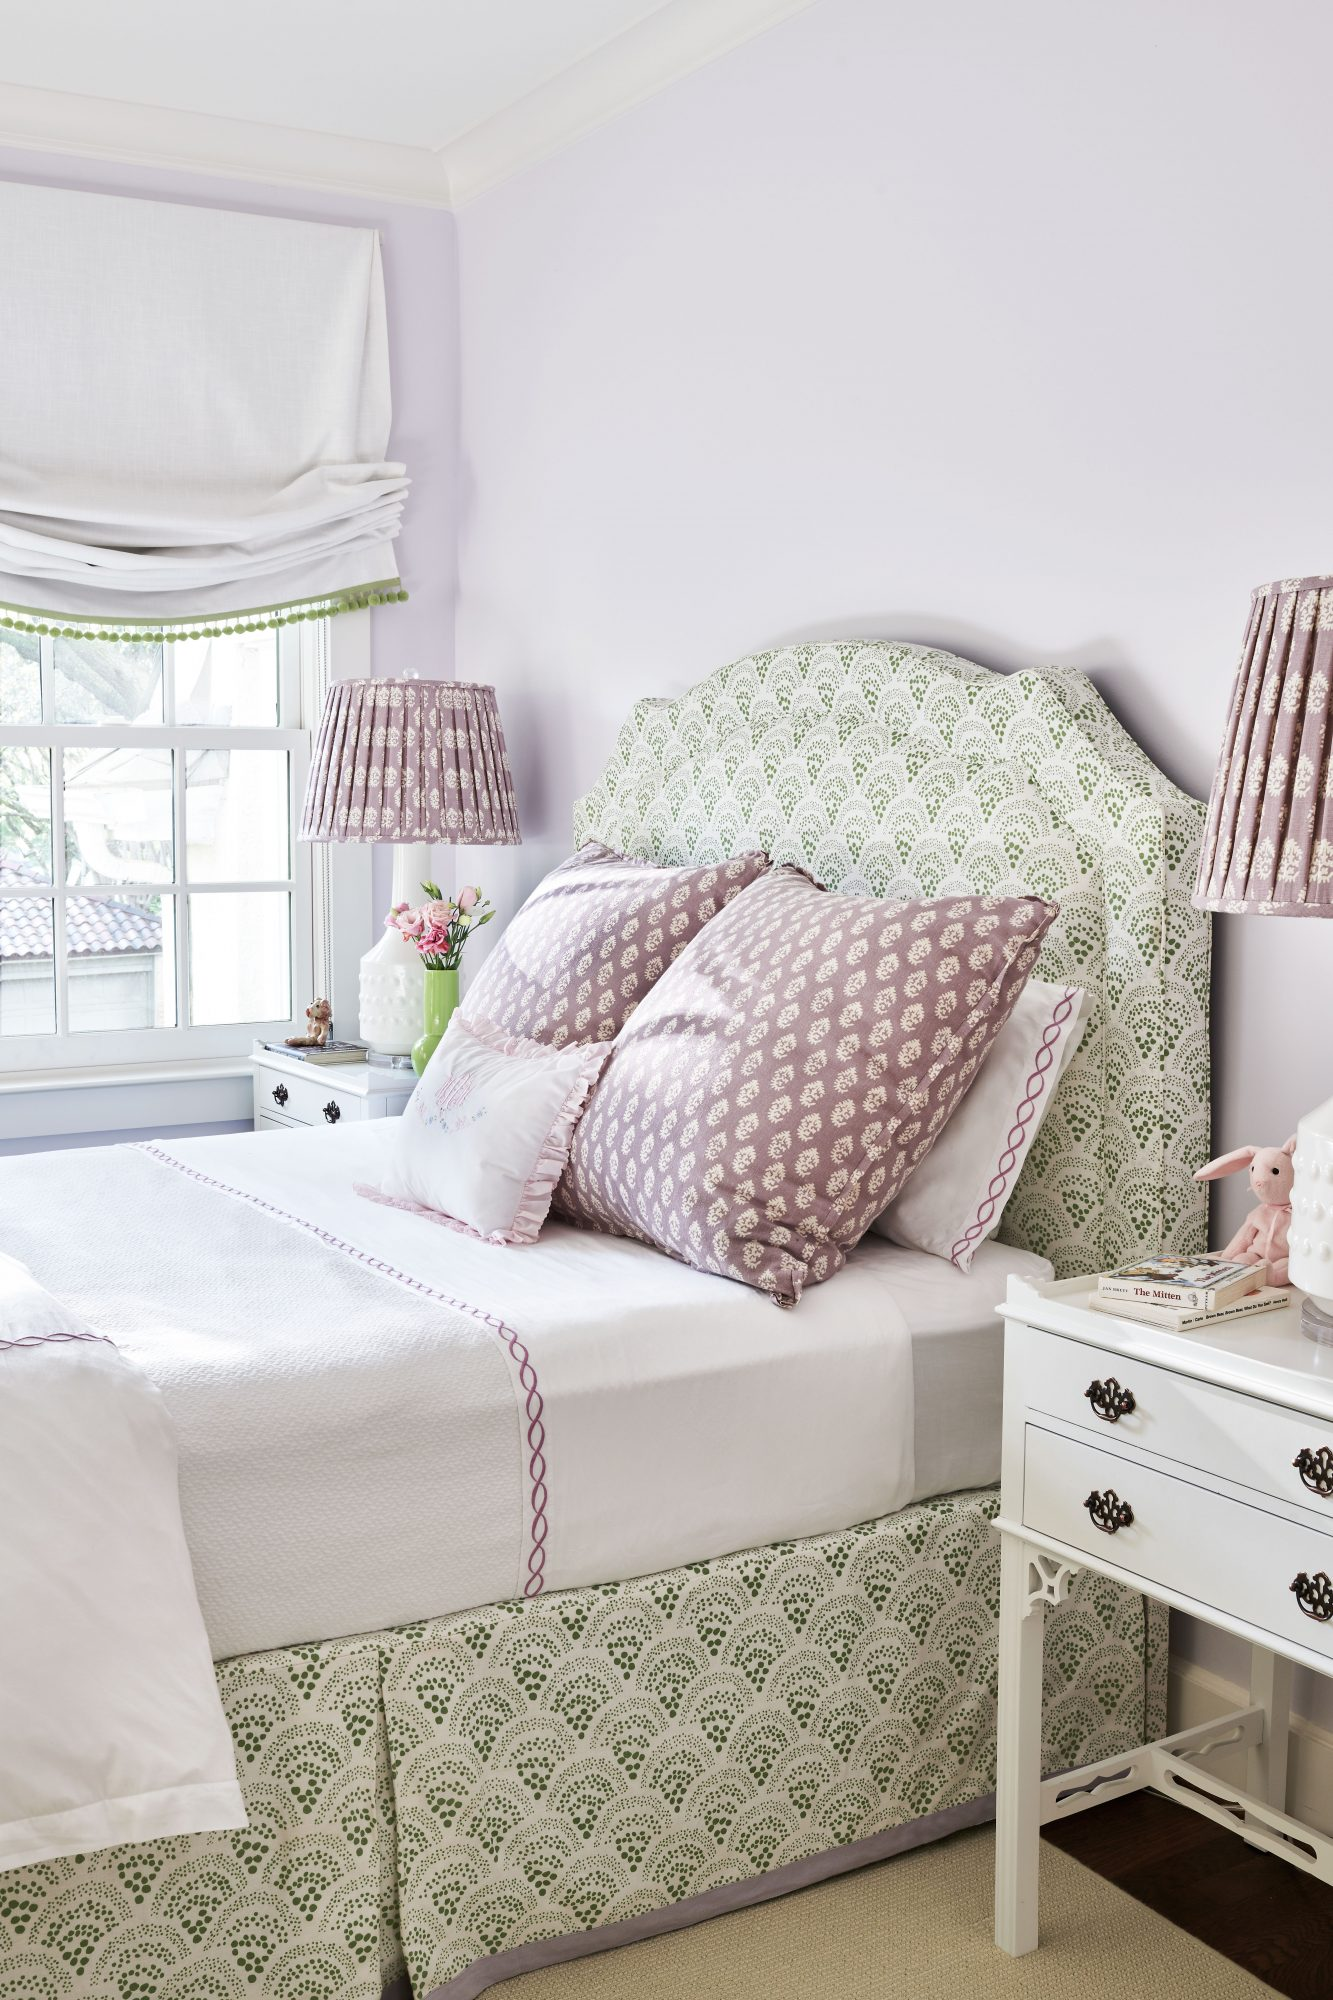 Girls bedroom with purple walls, pillows, and lampshade against a green fabric headboard